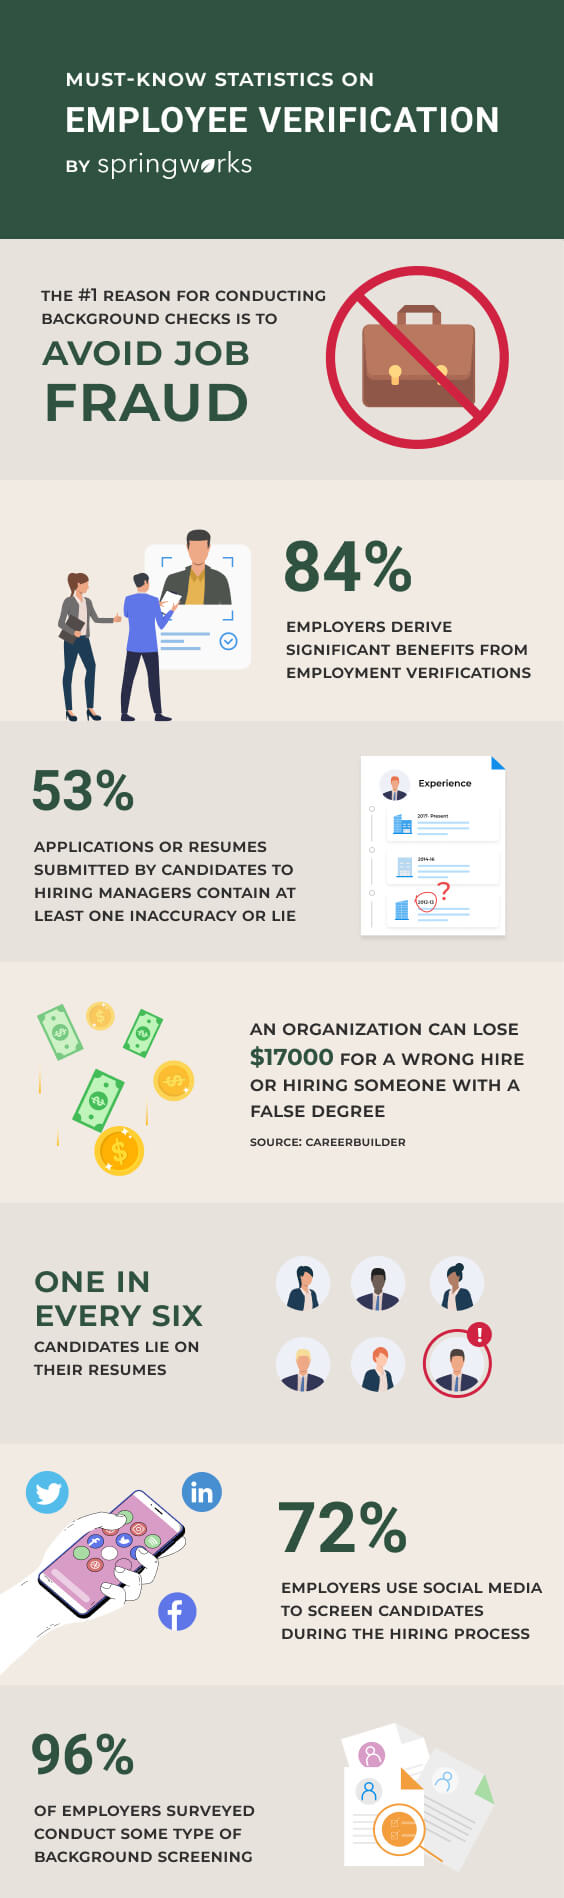 Employee verification statistics that you need to know